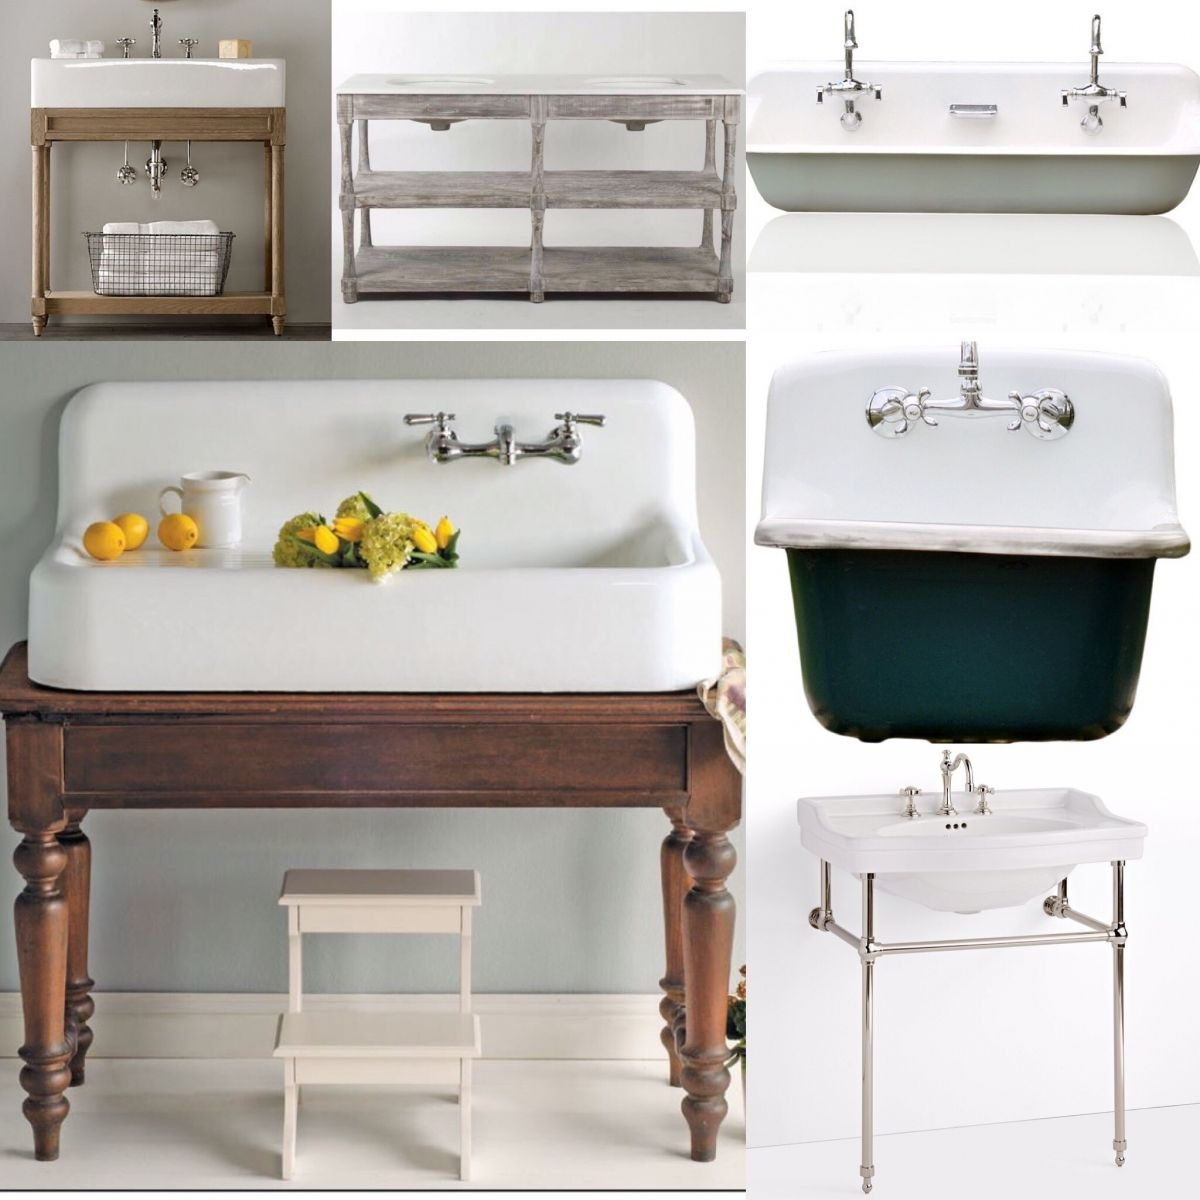 Old Farmhouse Kitchen Sinks: If You're Building A Farmhouse Or Looking To Remodel A